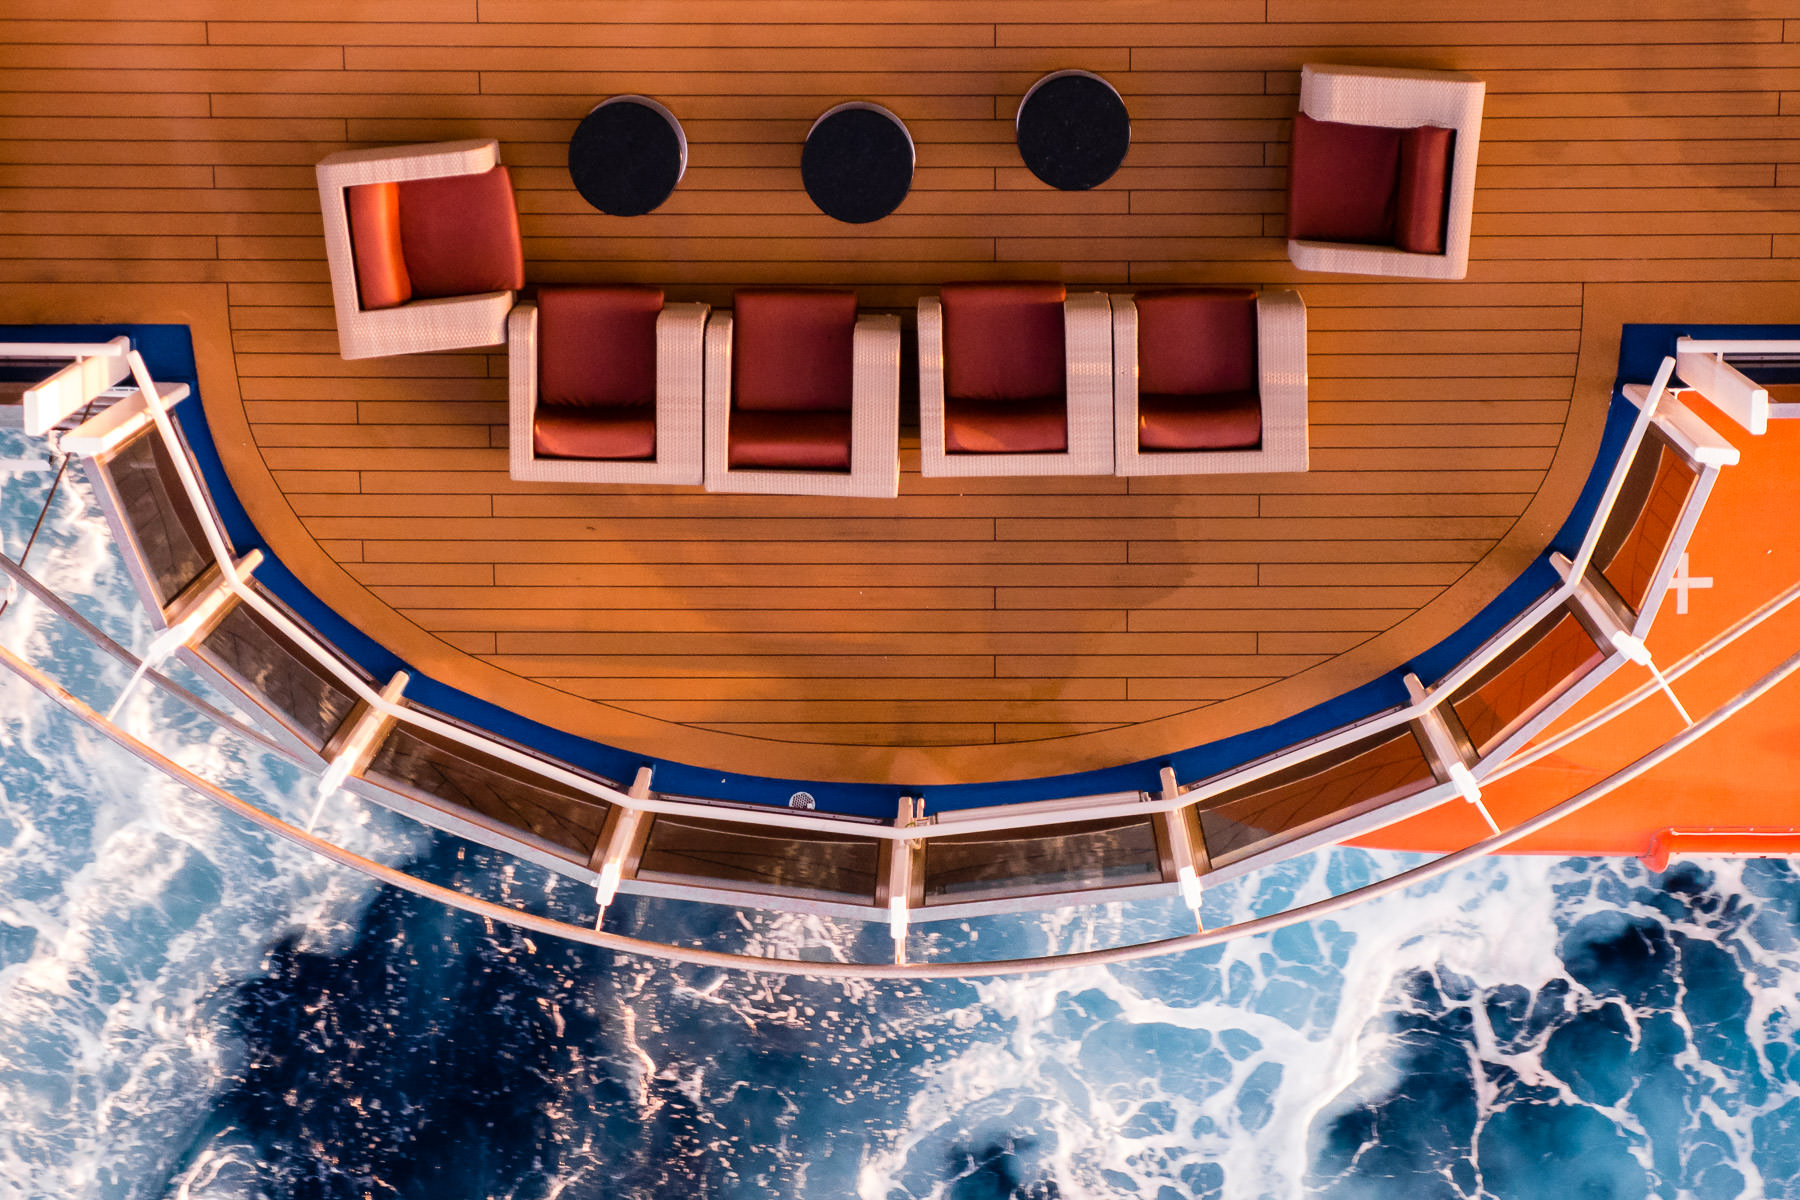 A seating area on the promenade deck of the cruise ship Carnival Magic juts out over the ocean.